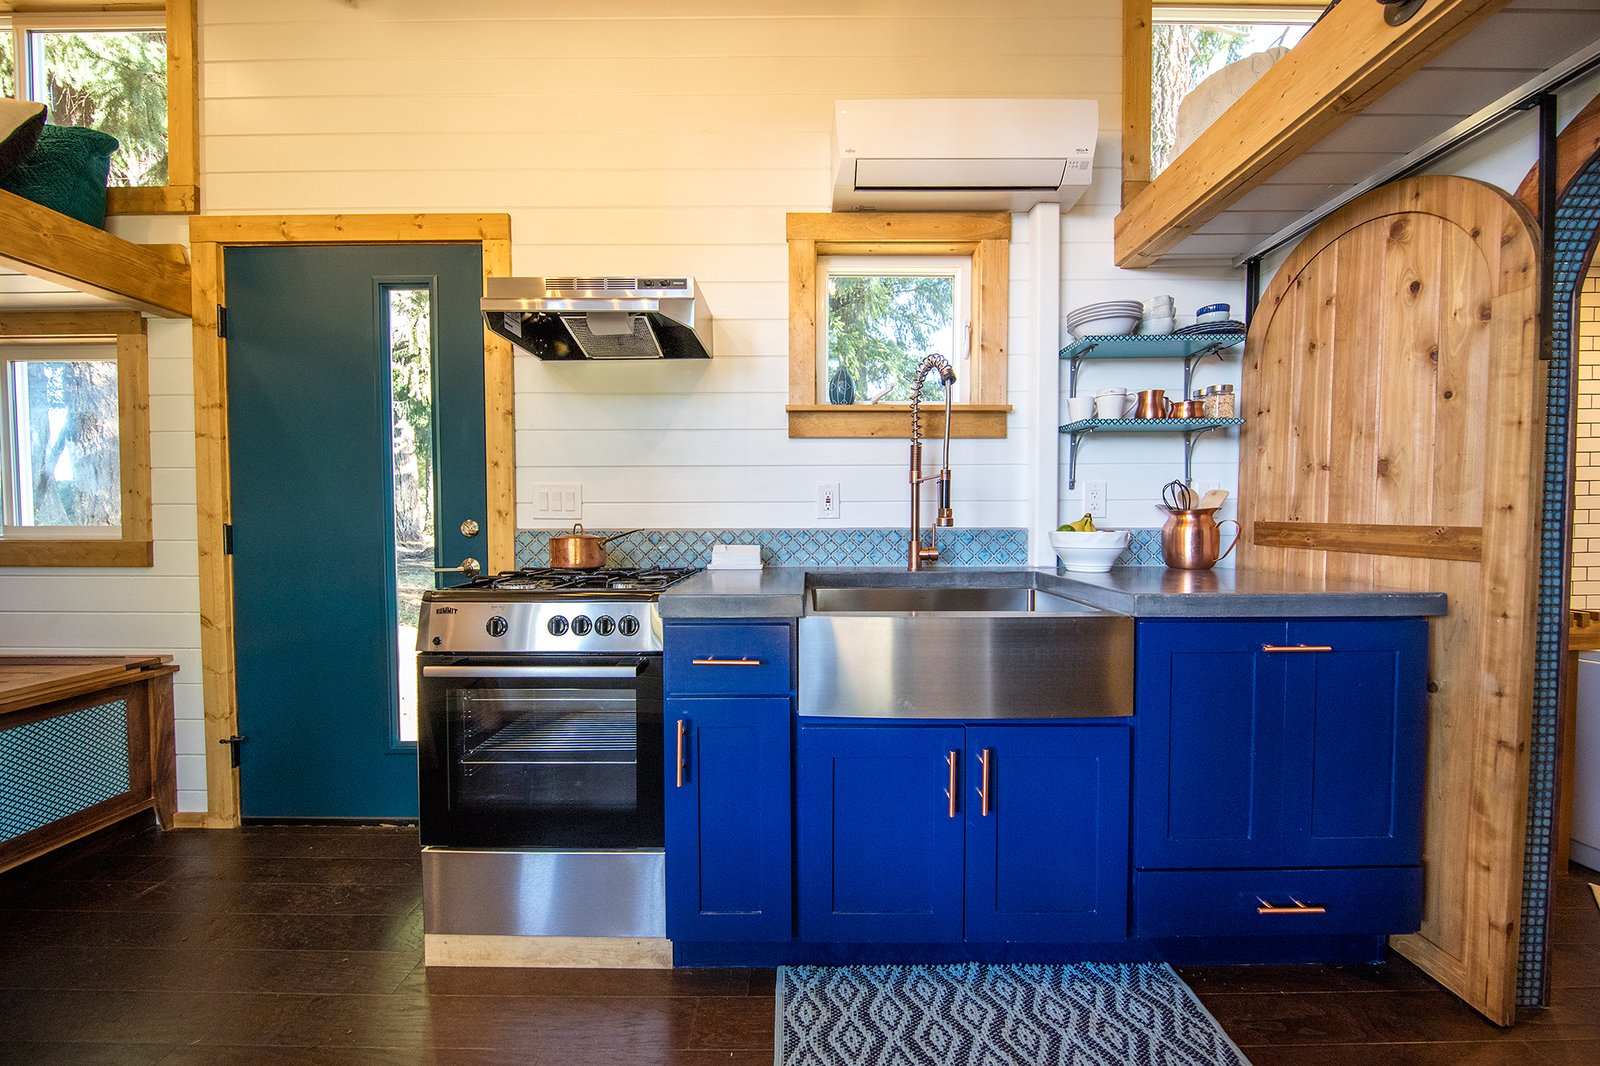 The kitchen has concrete countertops and bright blue cabinets.